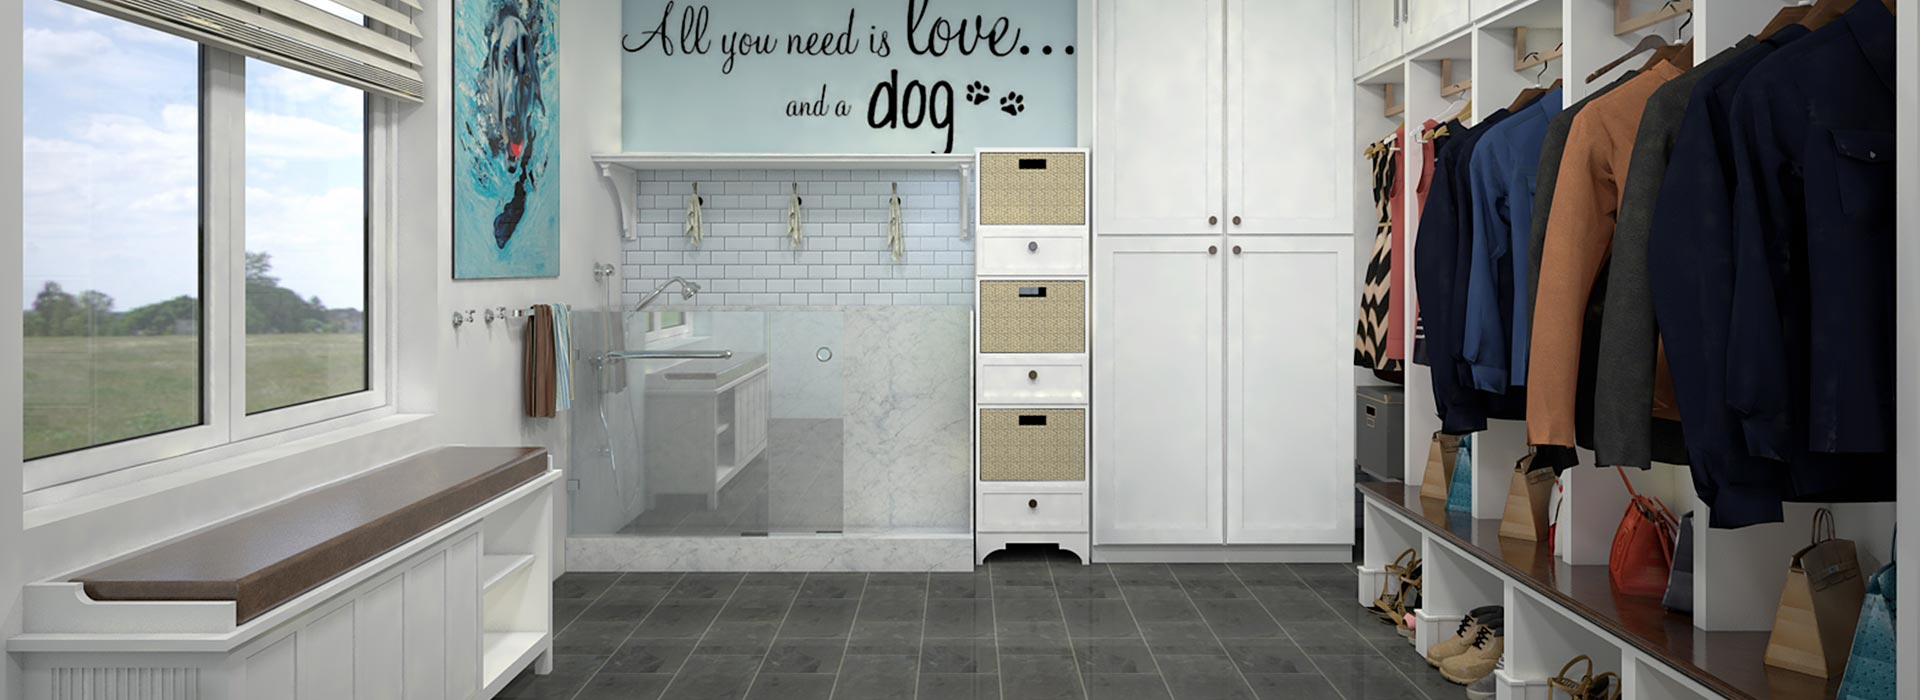 Picture of the Mudroom of the Pet Friendly House